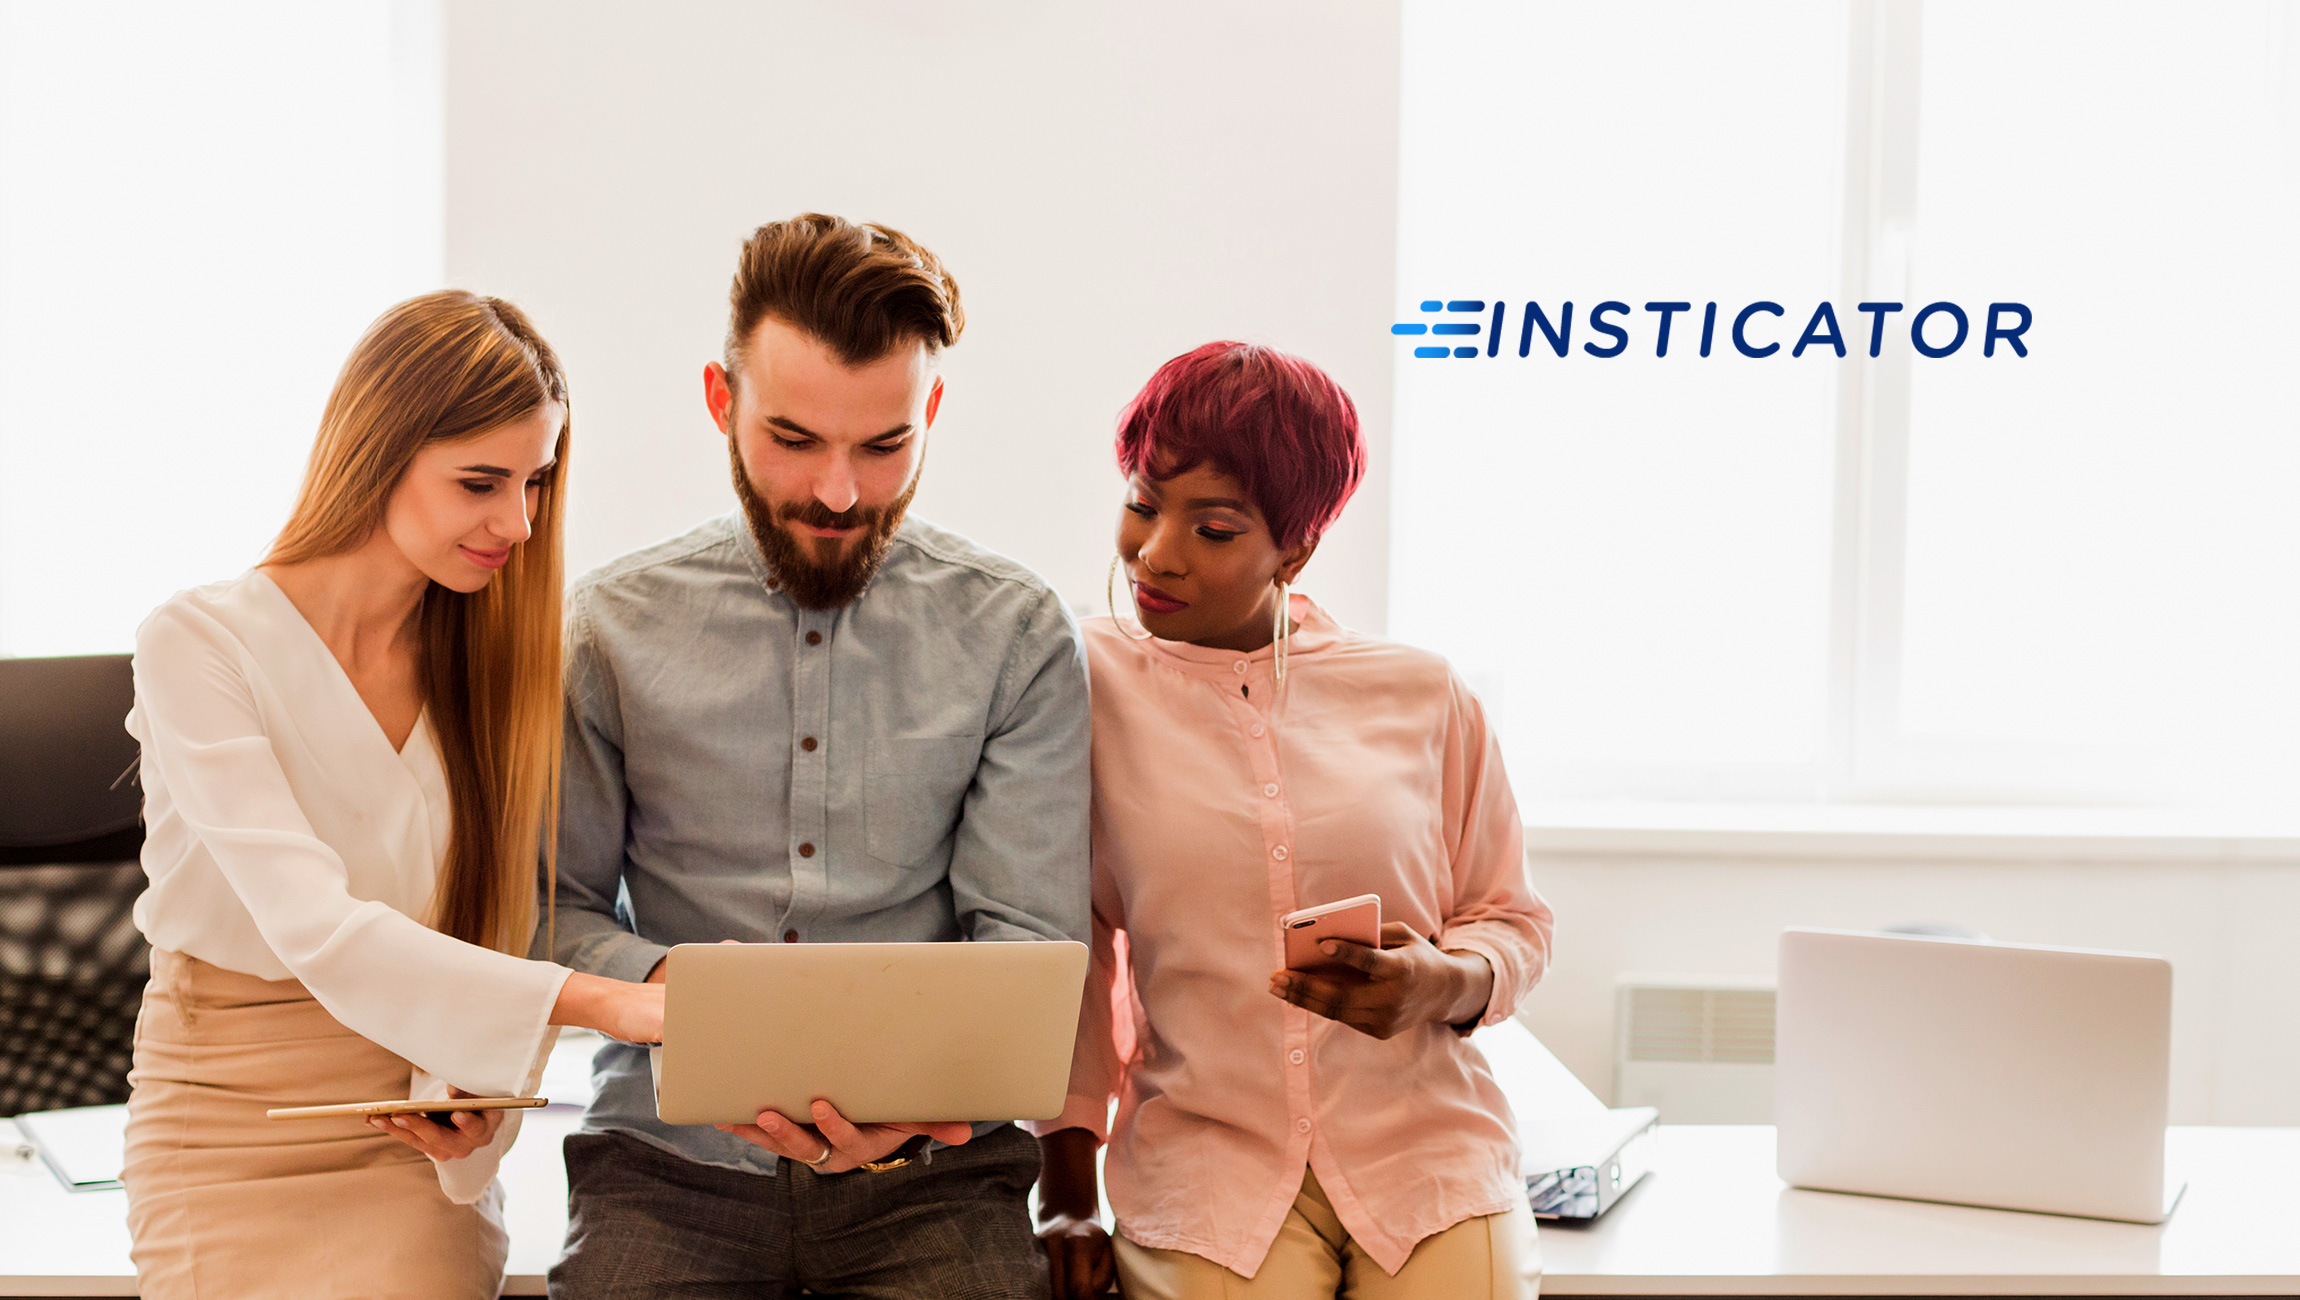 Insticator Expands Publisher Network, with the EmbedNow Included on an Additional 1,500 Sites